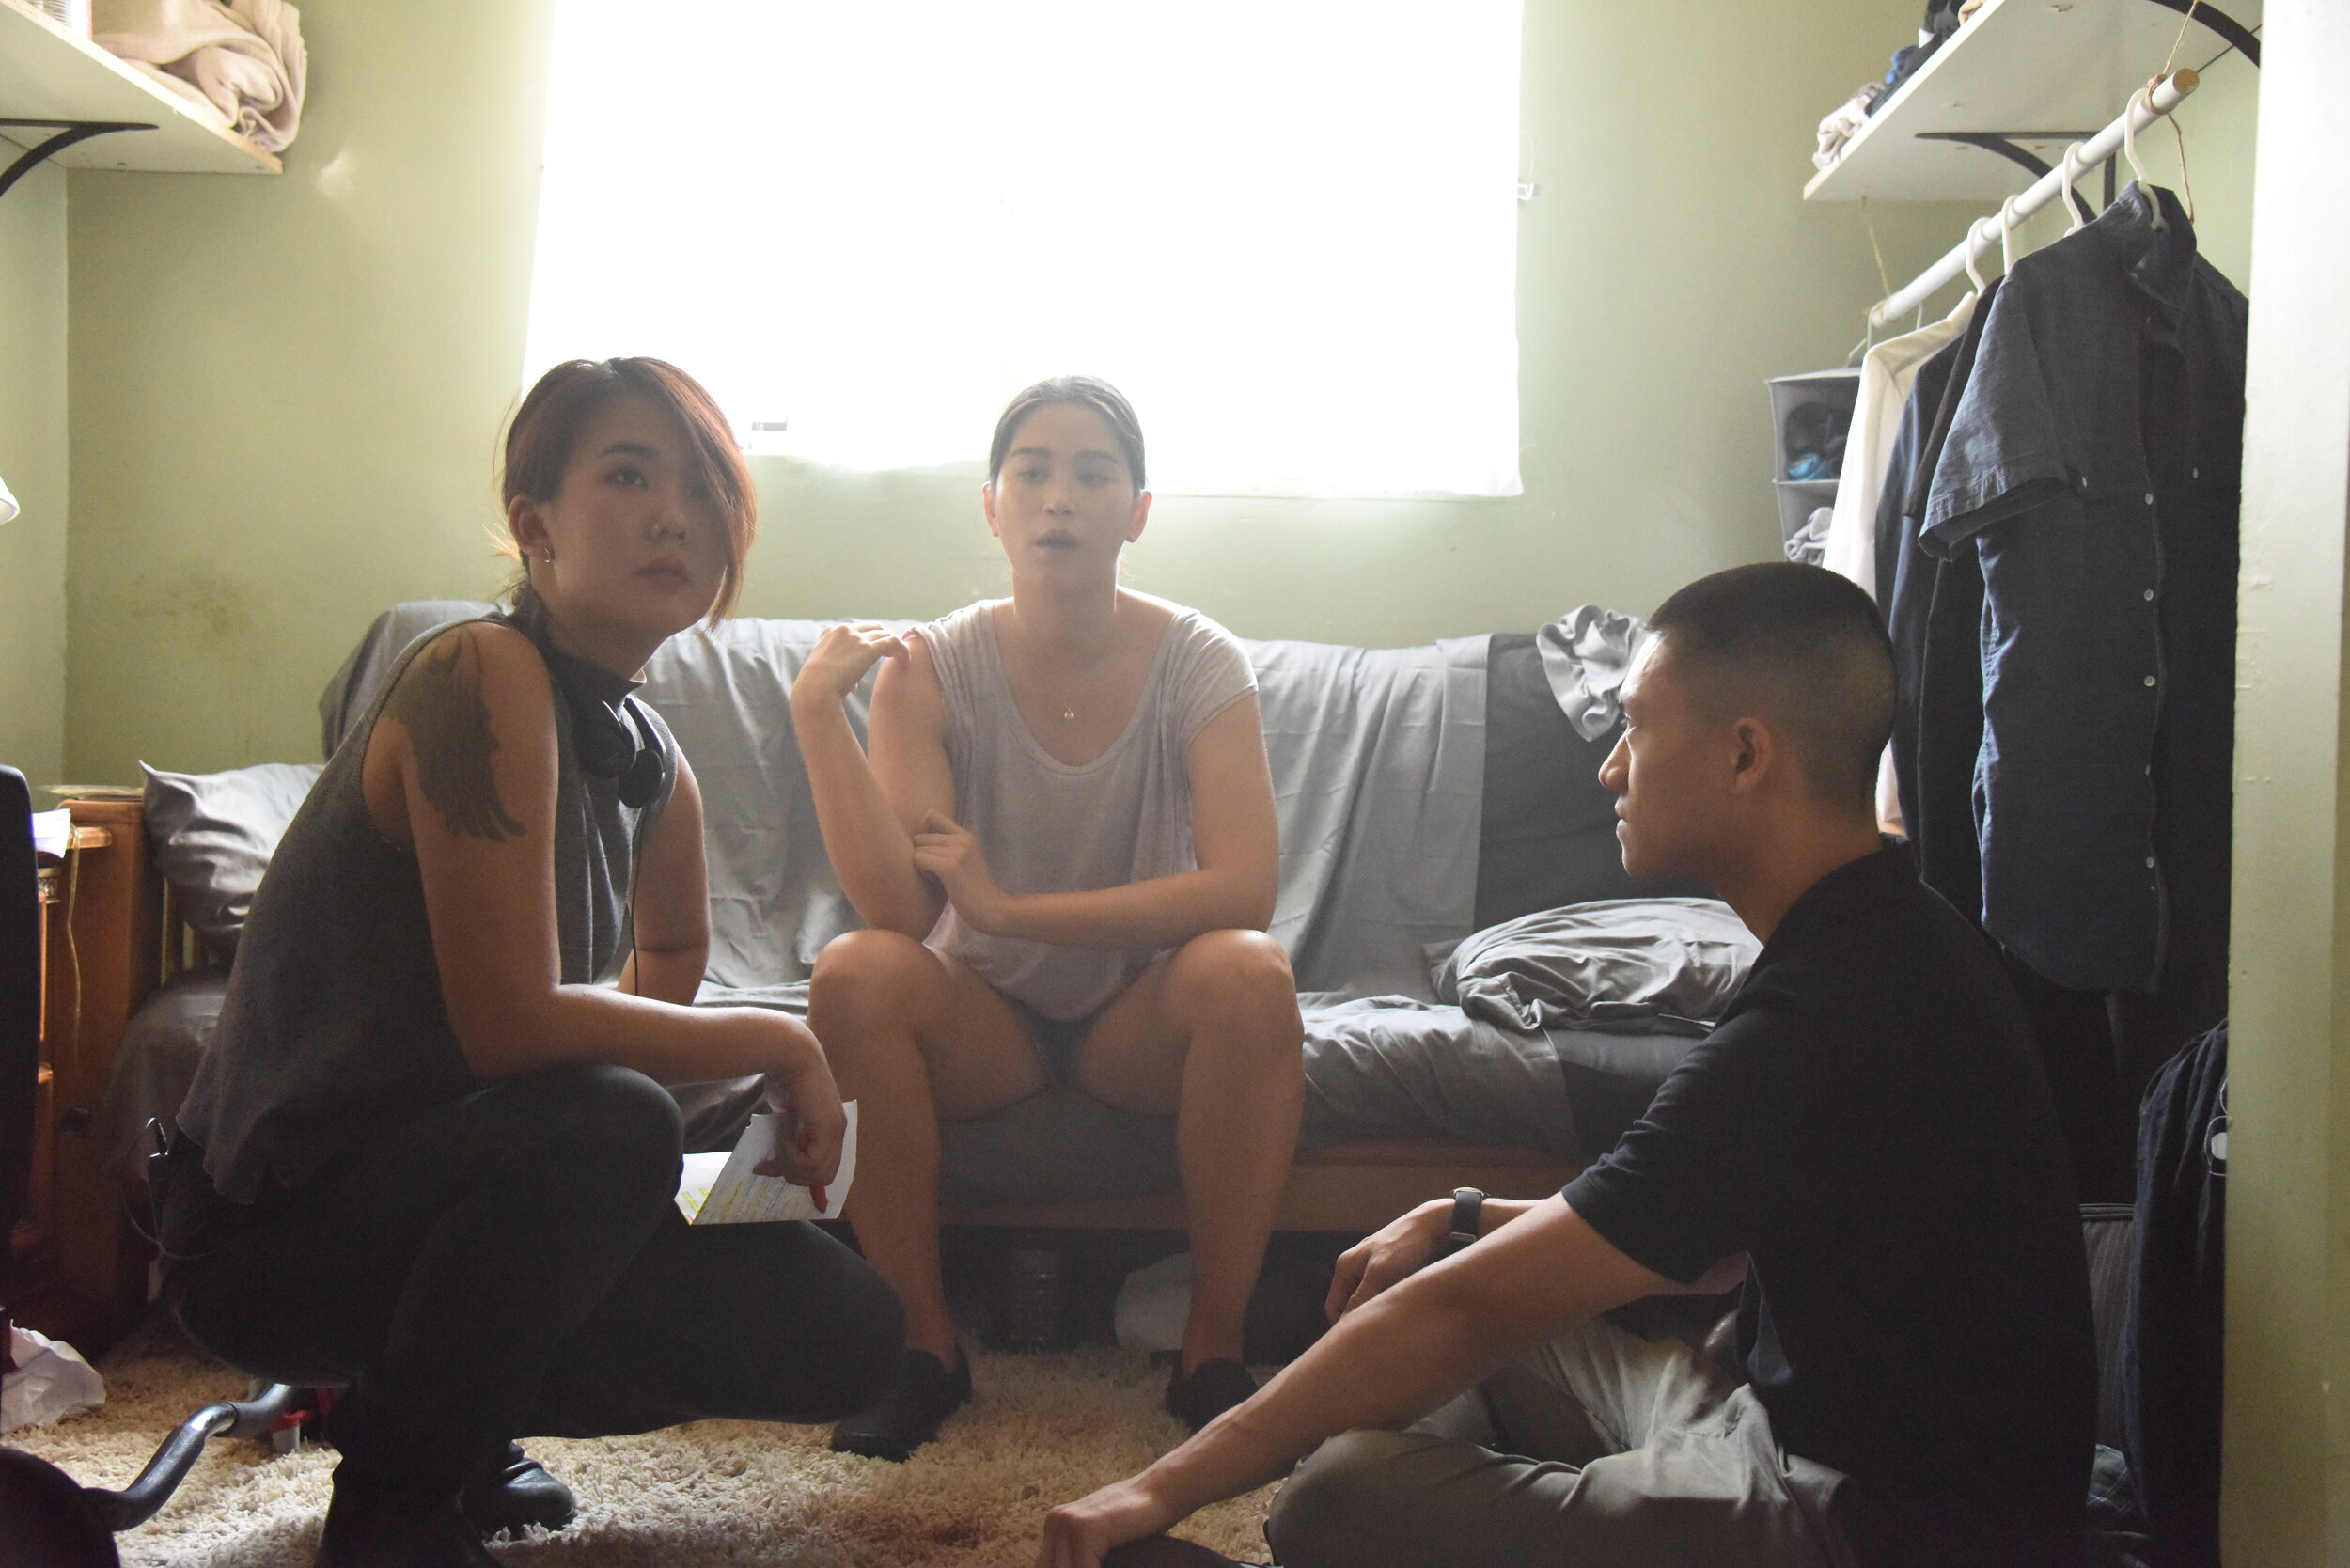 Director  Angela Chen  rehearse the altercation scene with actors  Dianne Doan  and  Brandon Soo Hoo .